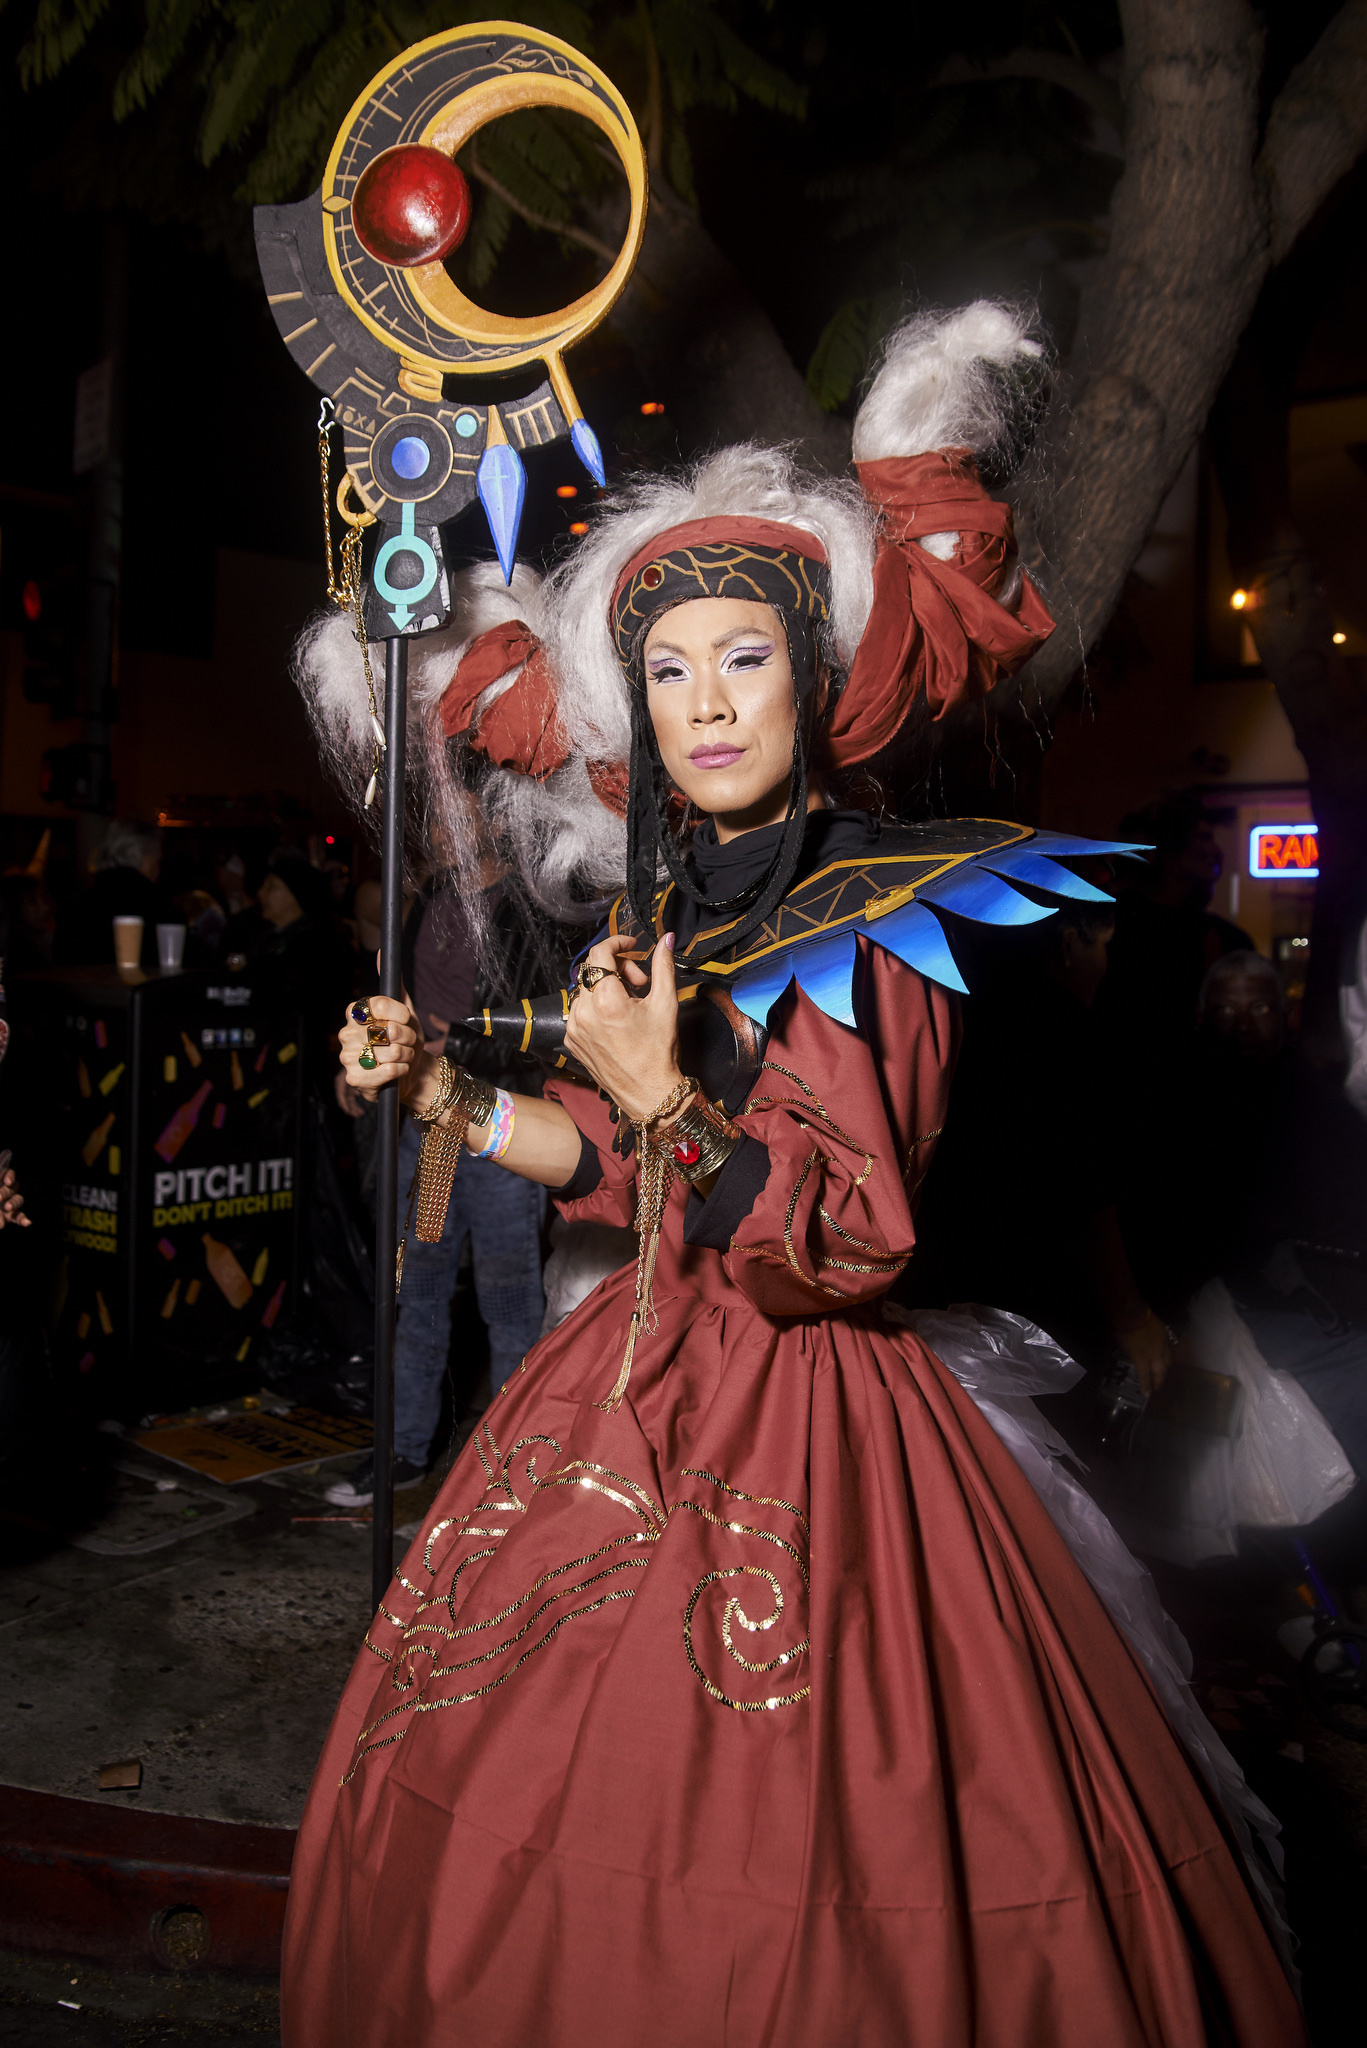 Hollywood Halloween Carnaval Costume Contest